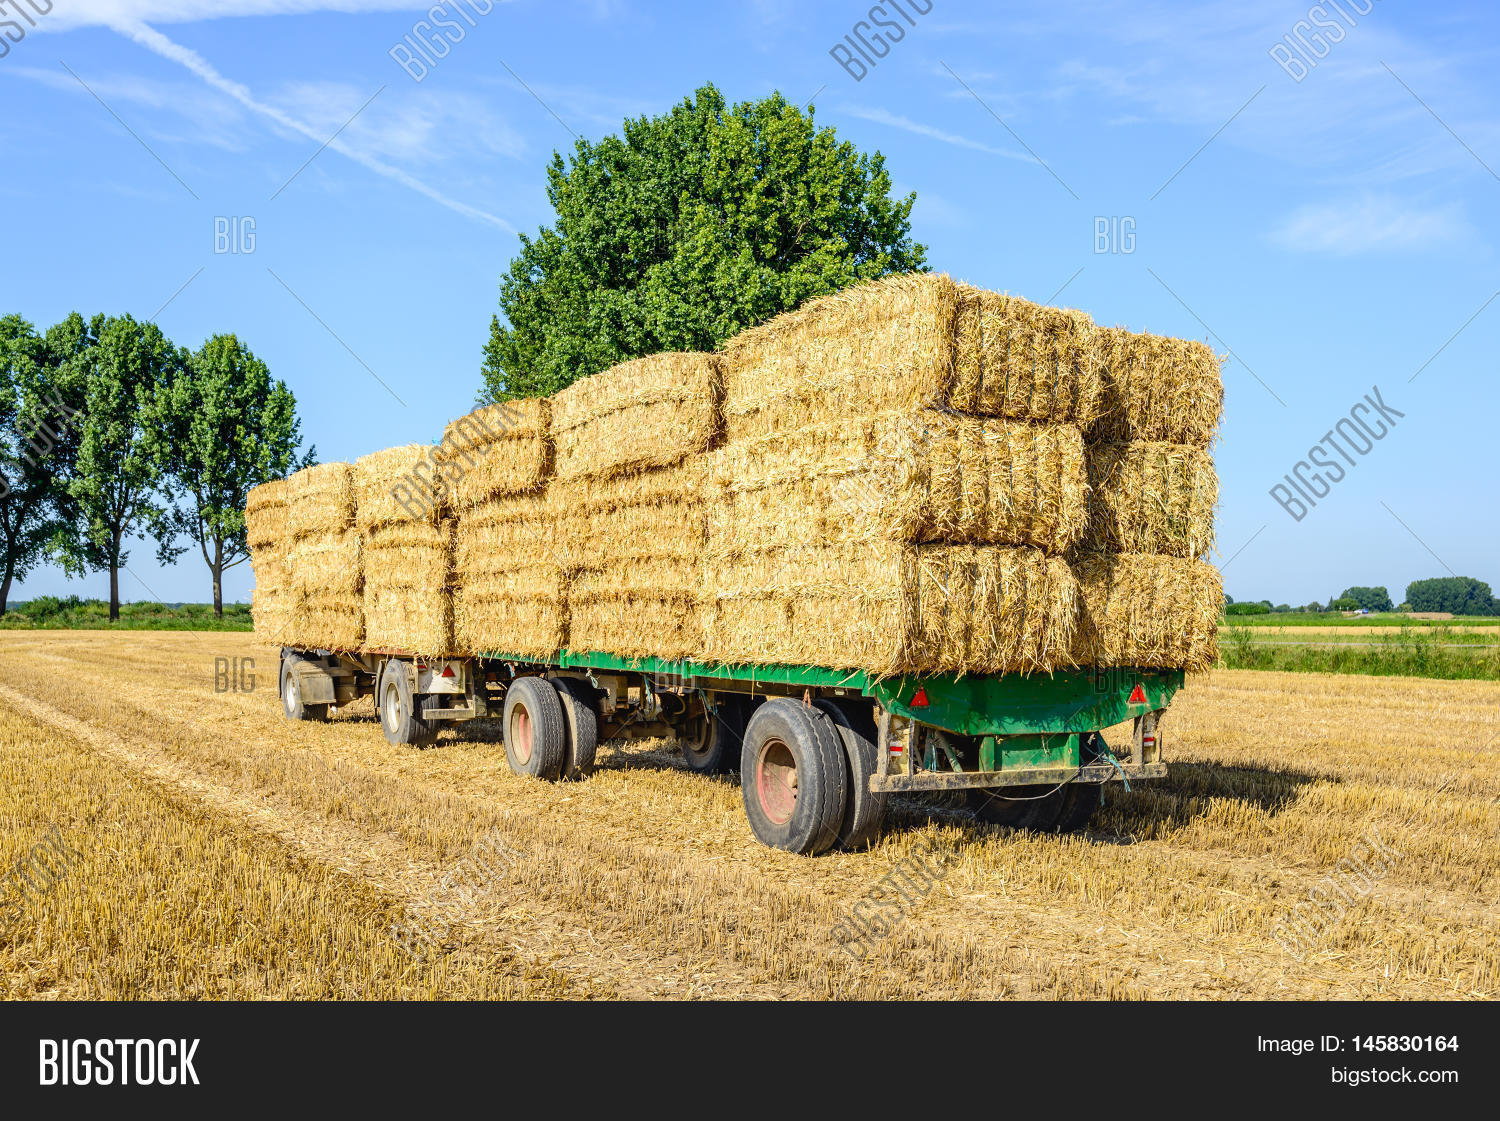 Agricultural Trailers Image Photo Free Trial Bigstock